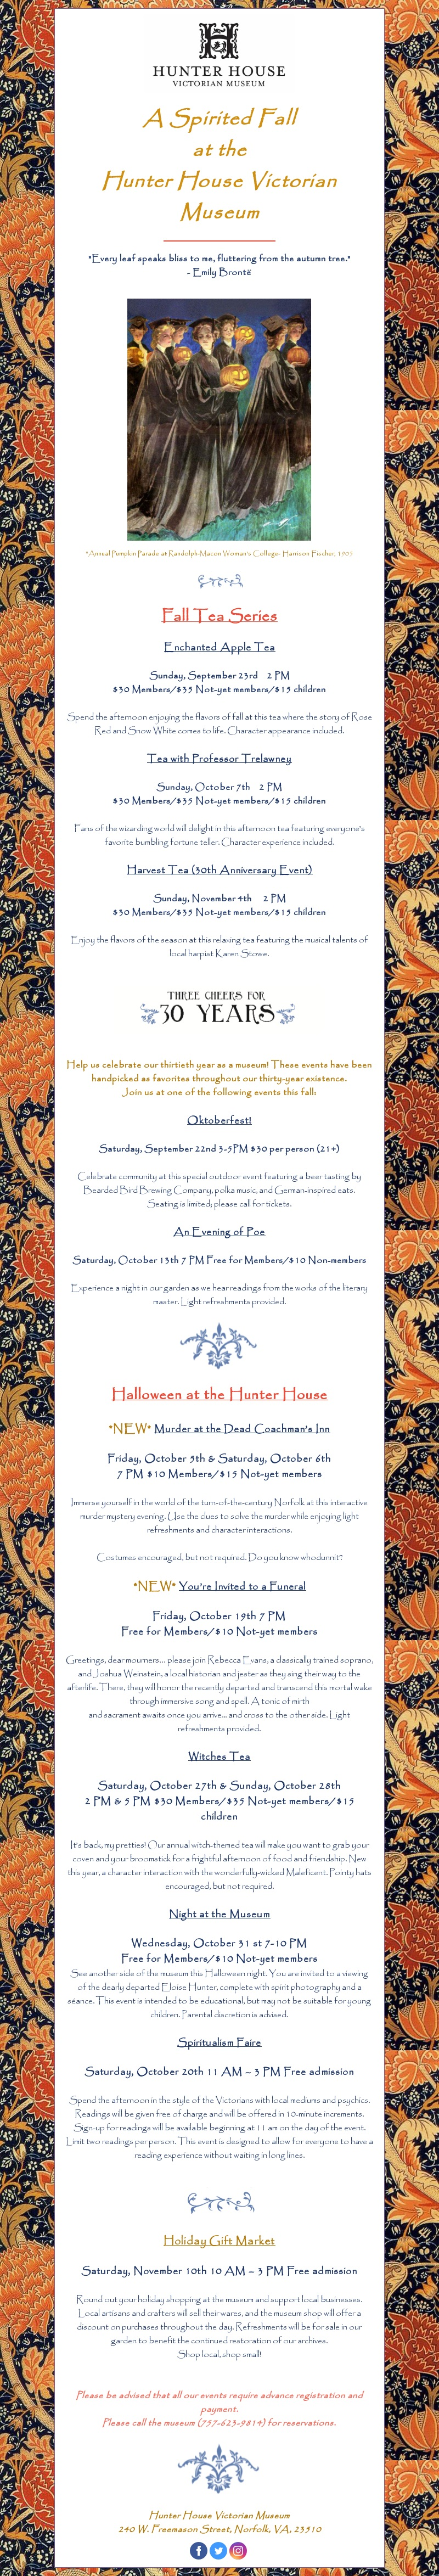 Fall 2018 Events at the Hunter House Victorian Museum